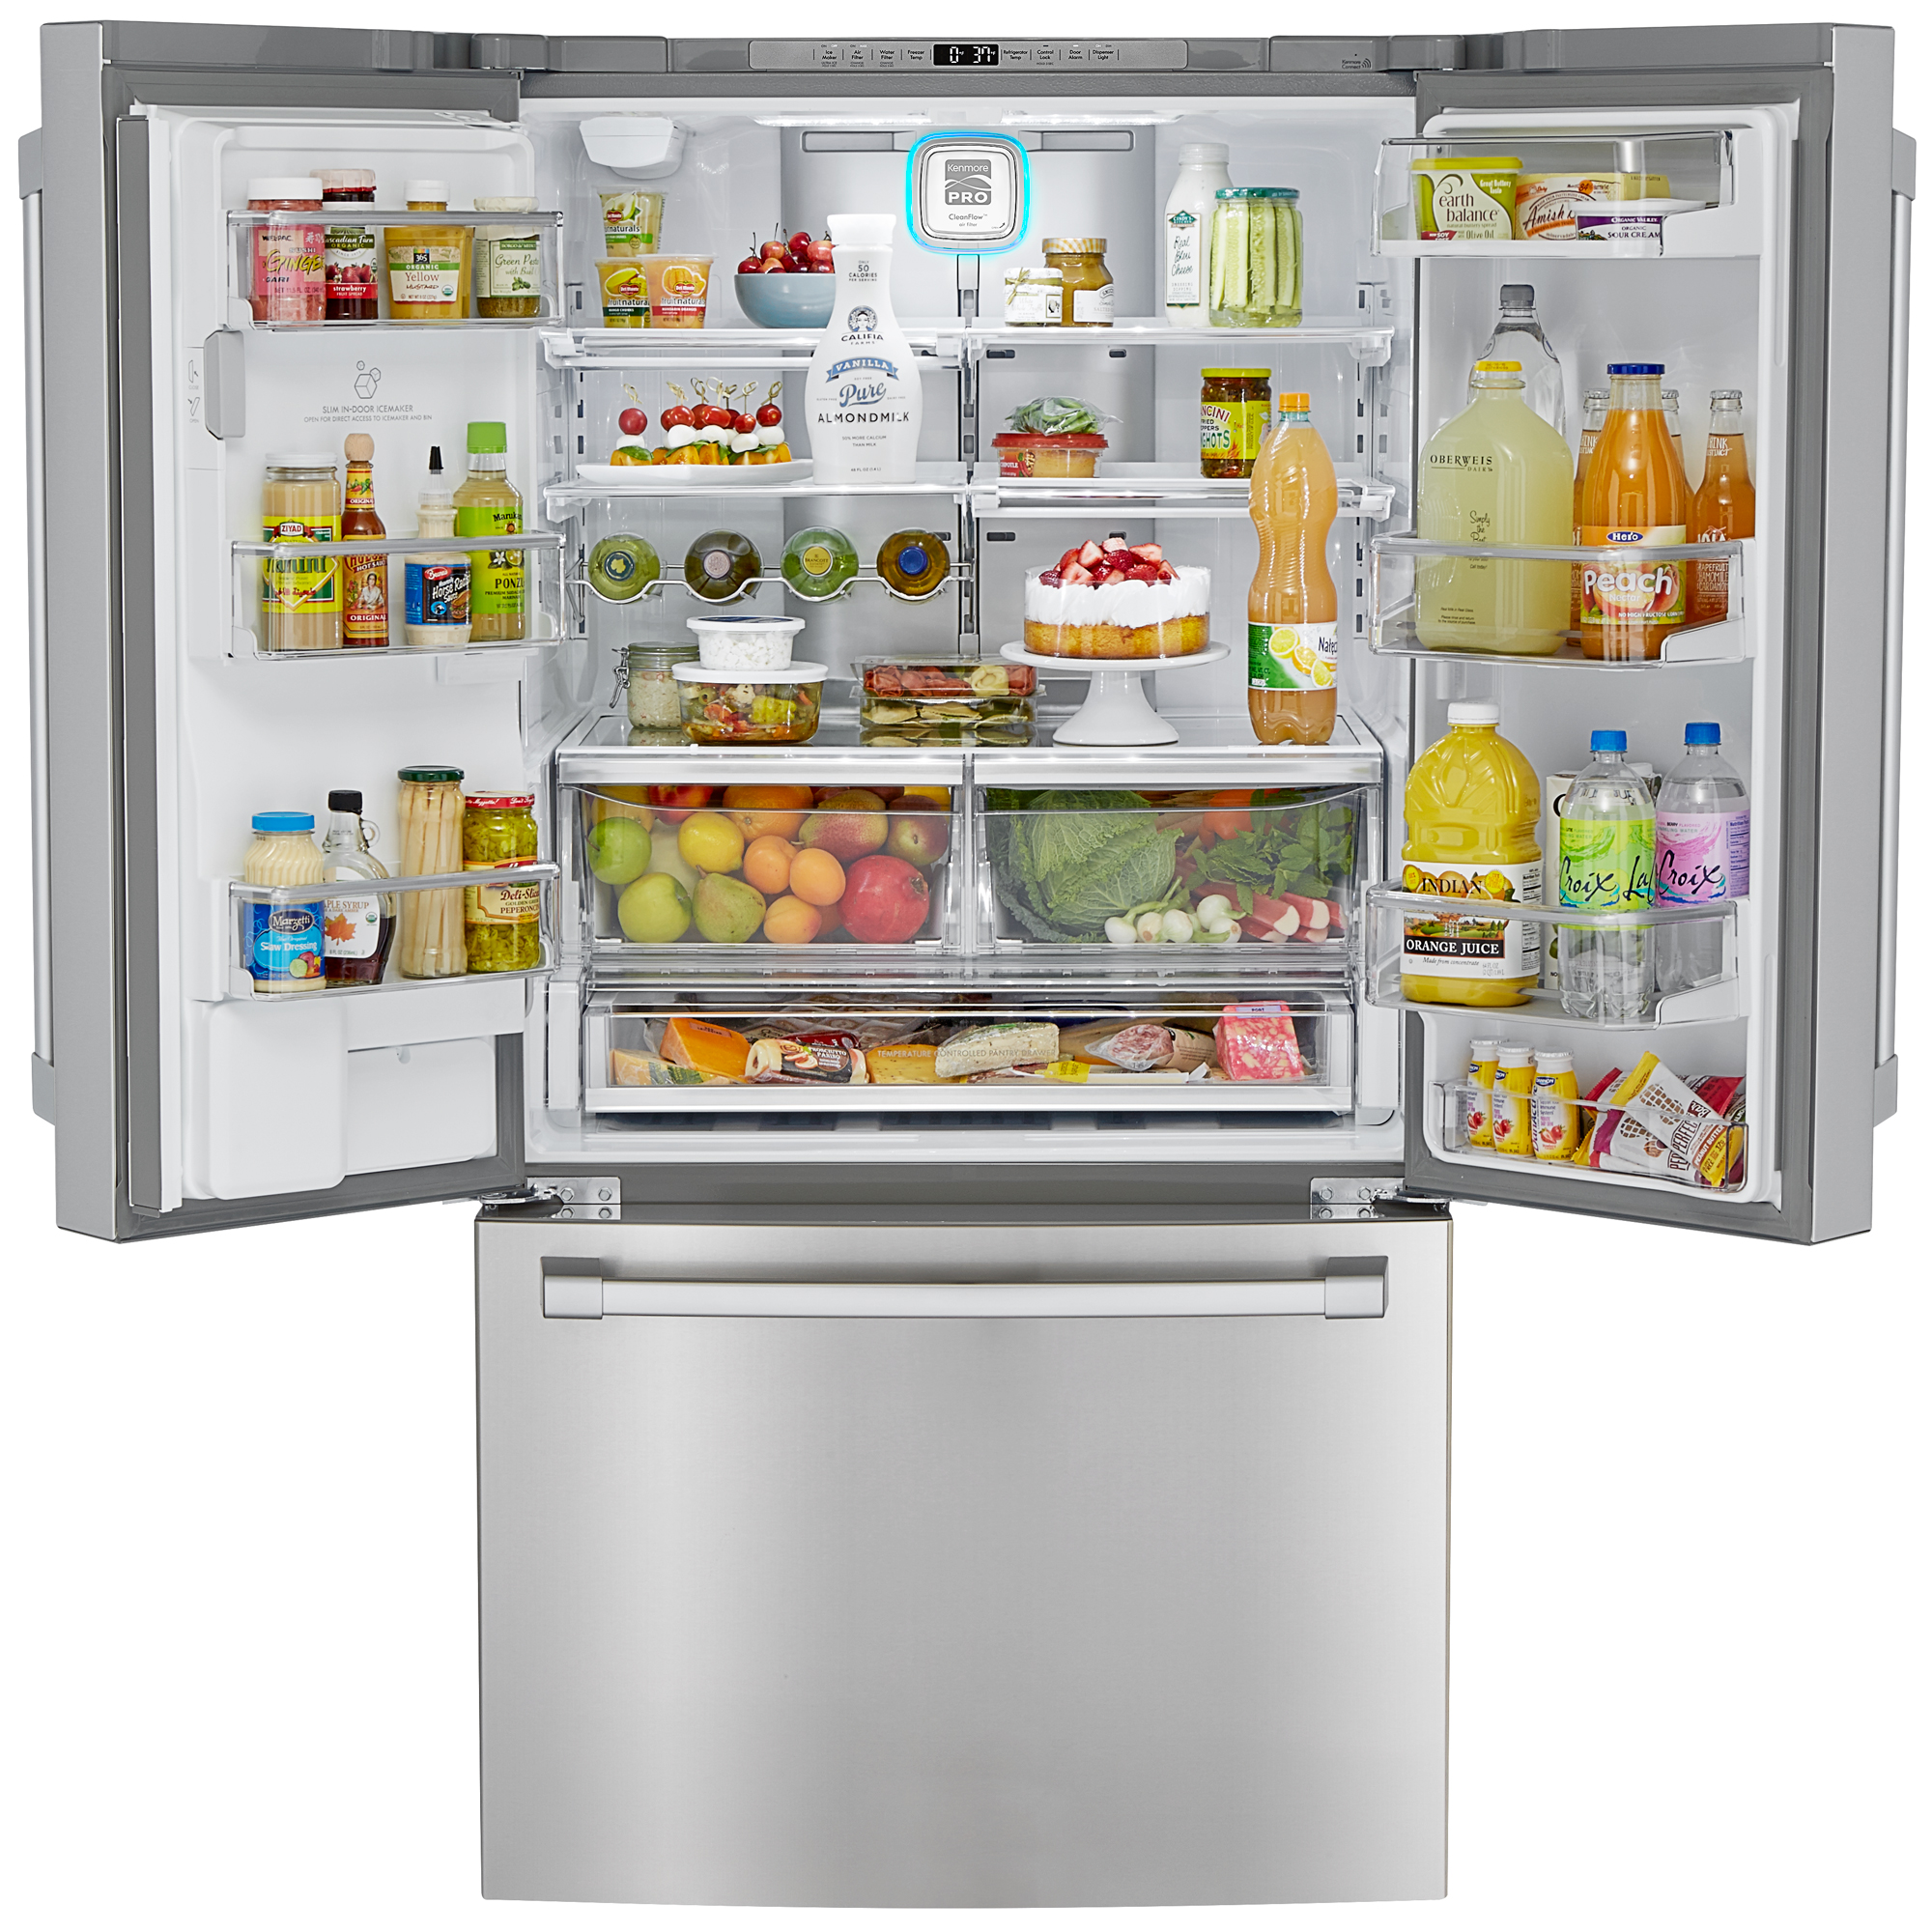 Kenmore Pro 79993 23.7 cu. ft. Counter-Depth French Door Refrigerator w/ Pro Style